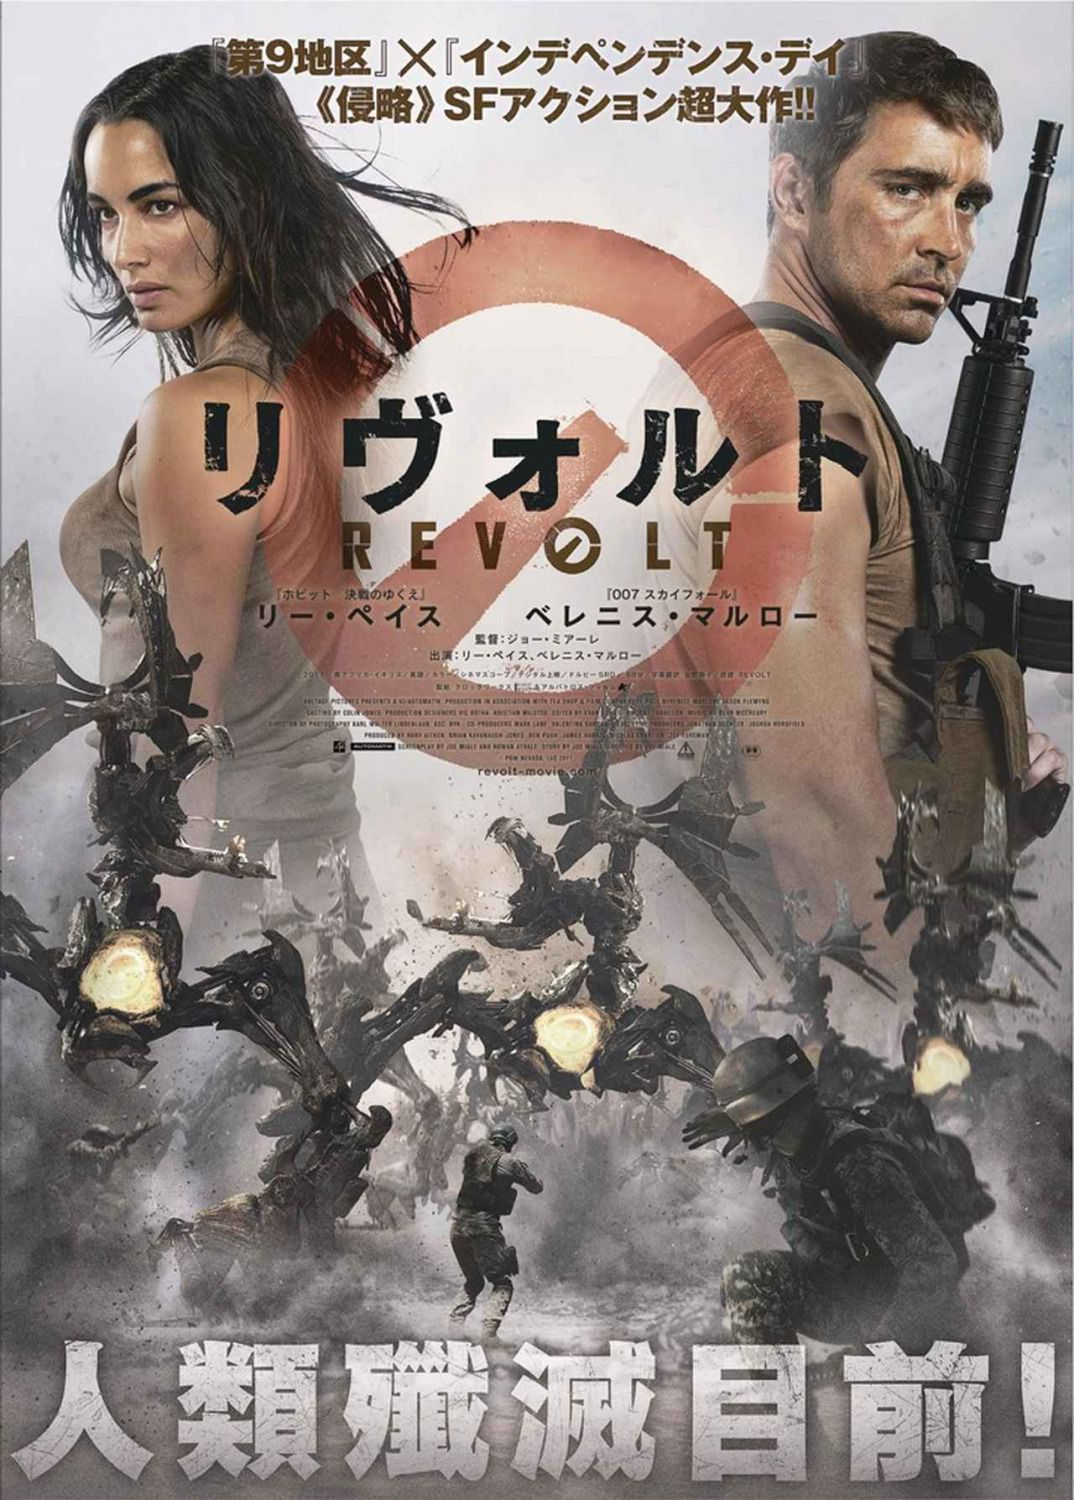 Film - Revolt .. Alien invasion - poster